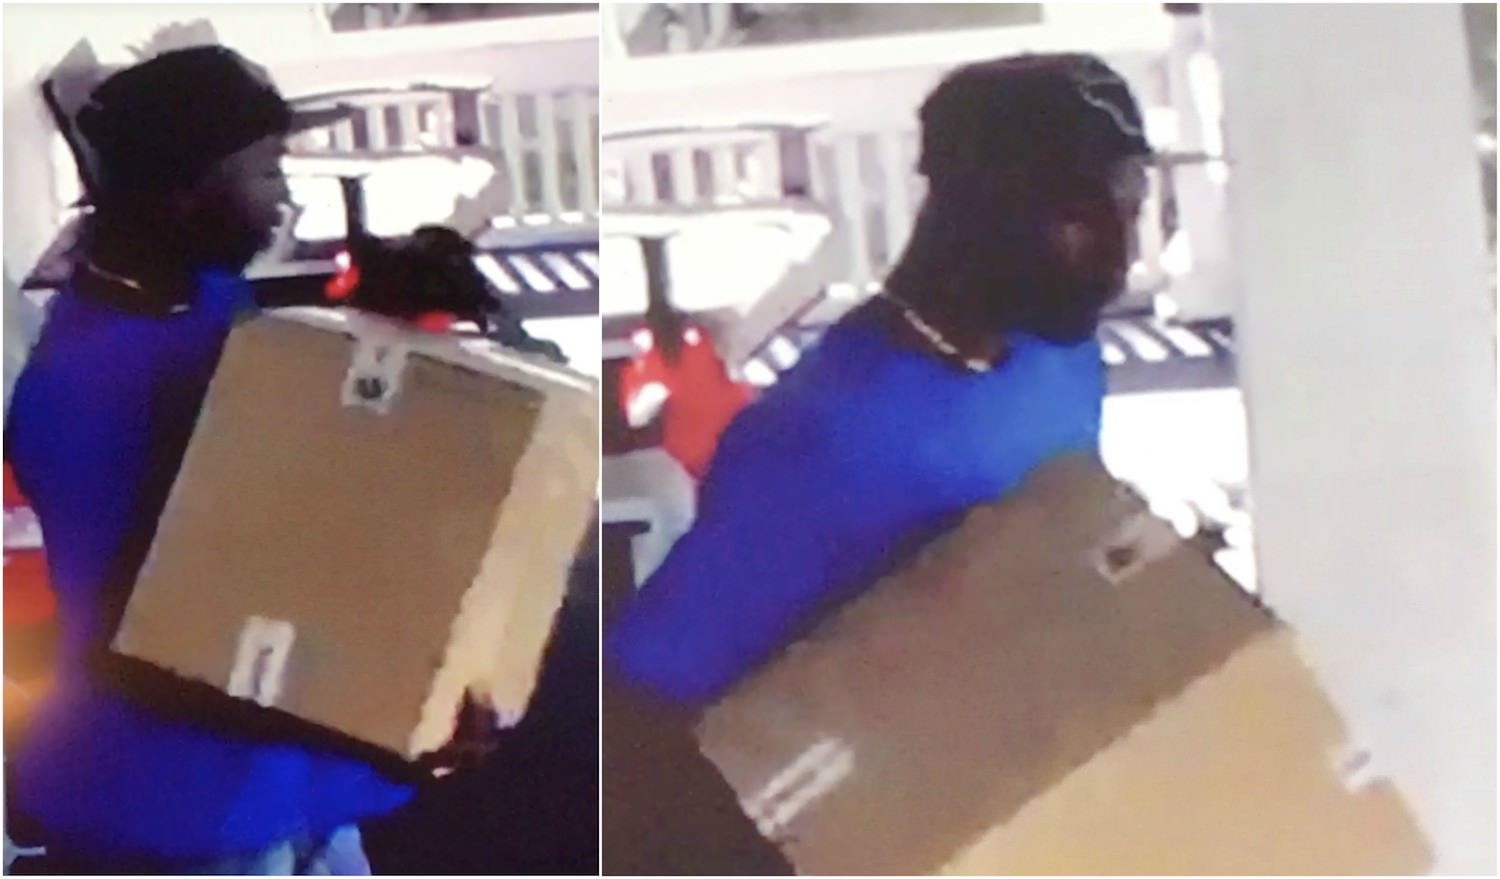 Package theft on Main Street in Sioux City do you recognize this guy